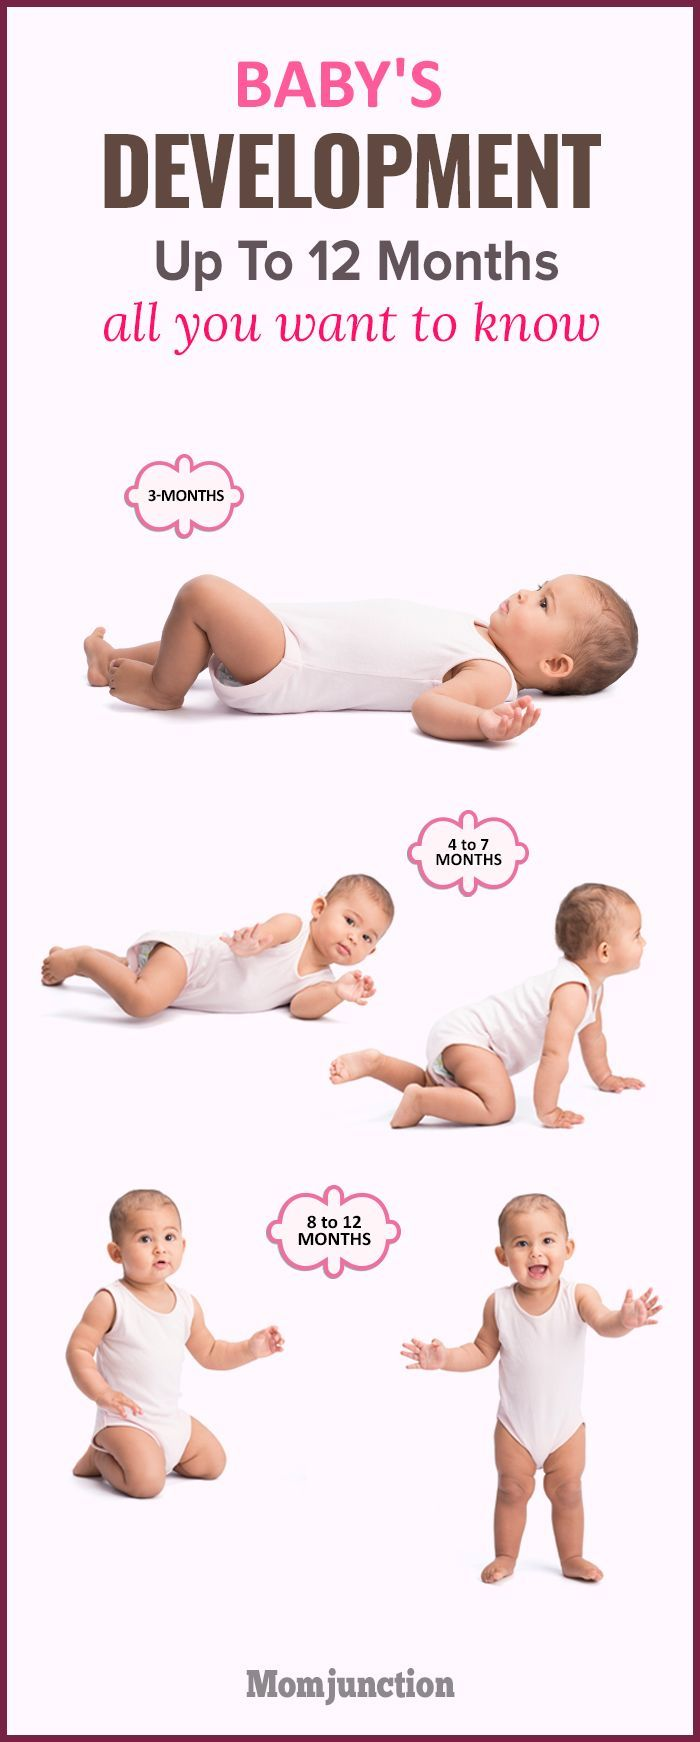 All You Wanted To Know About Your Baby's Development Upto 12 Months